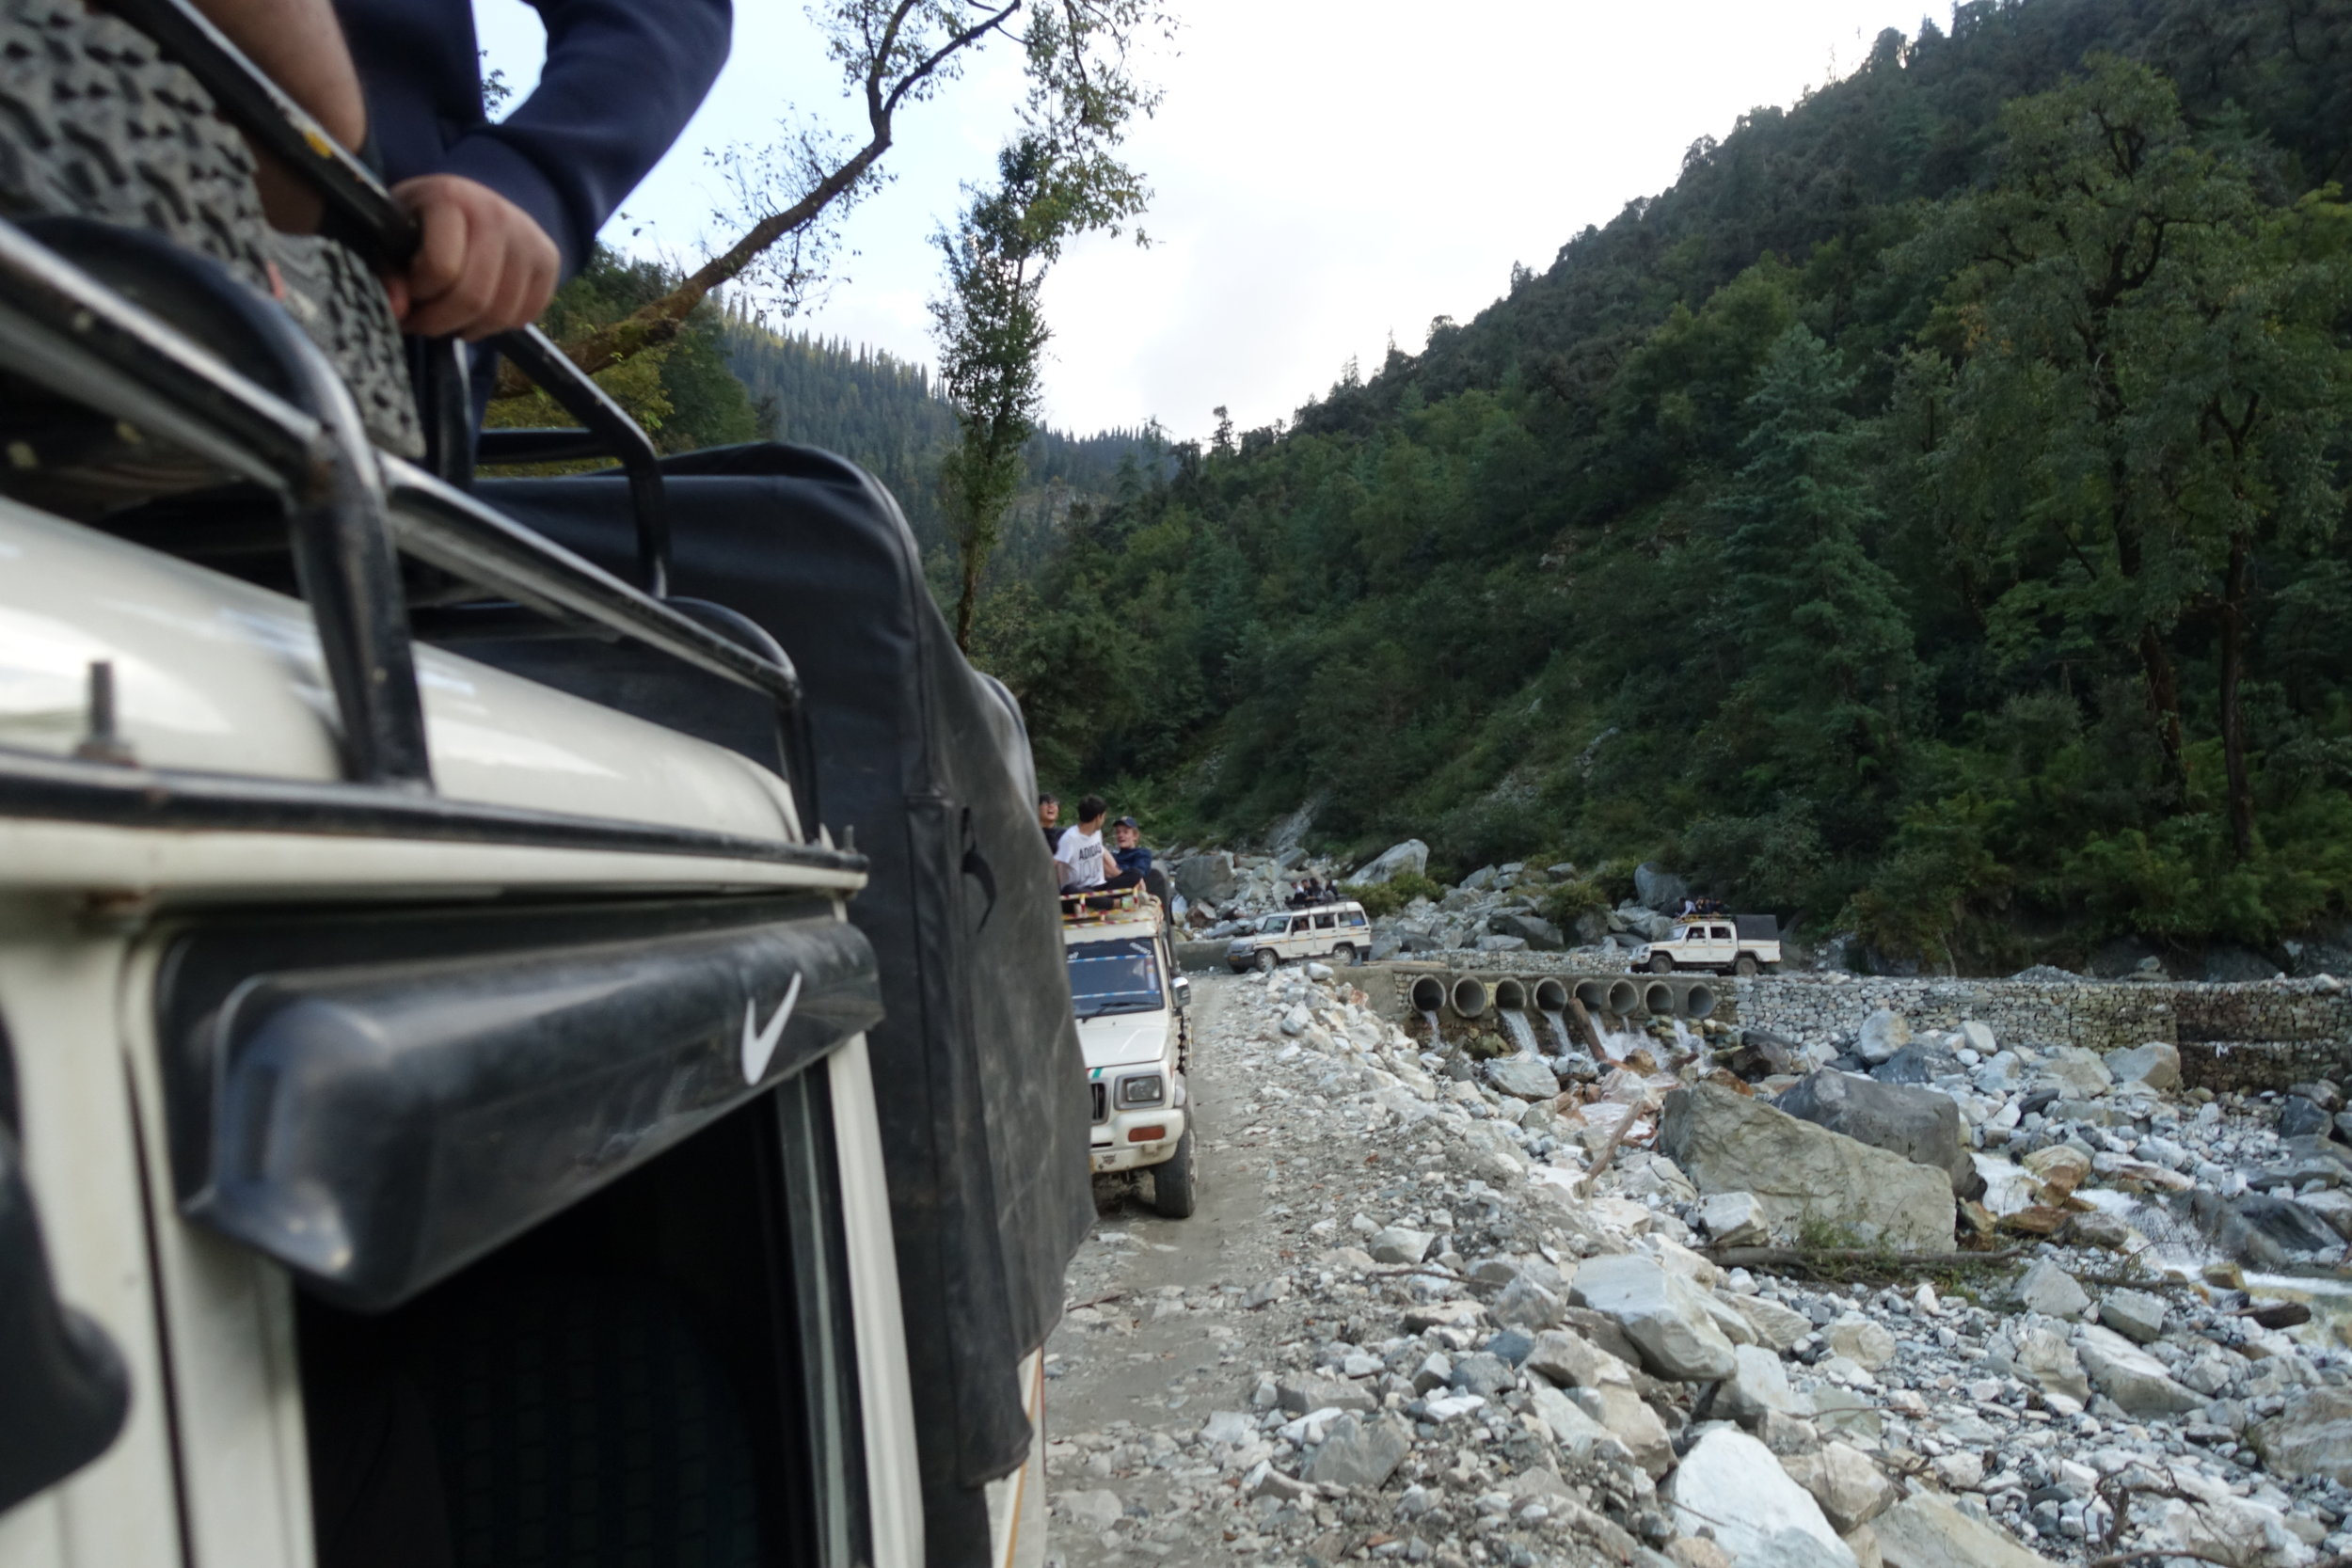 To get to our trailhead, we had to ditch our vans for jeeps and then ditch those jeeps for other jeeps where a landslide had wrecked the road.